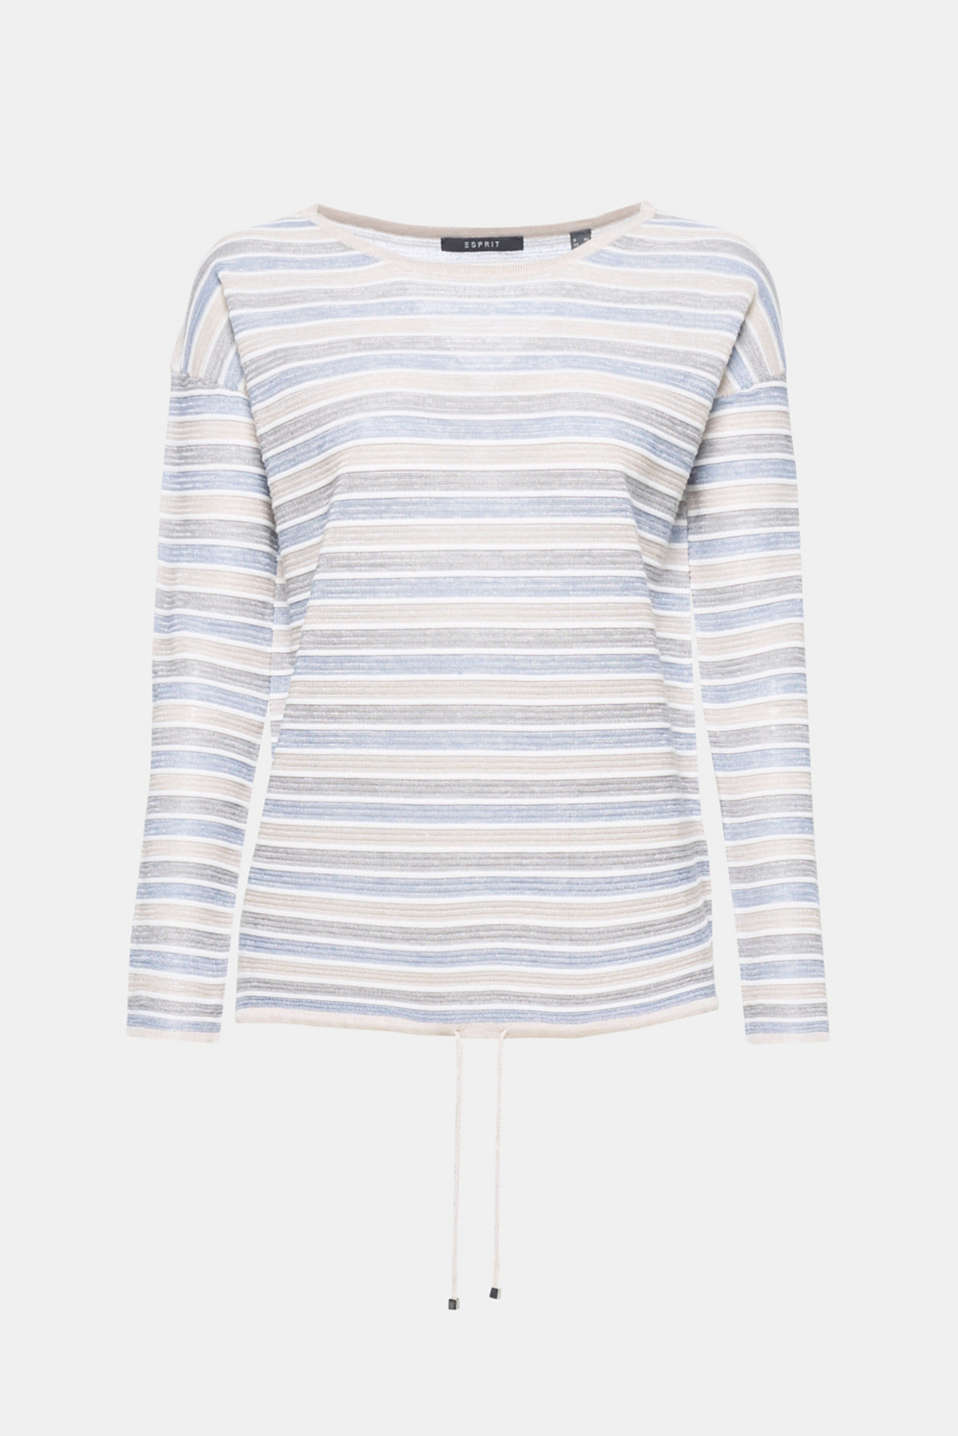 The soft, shimmering striped look and the drawstring tie give this sweater a special style.